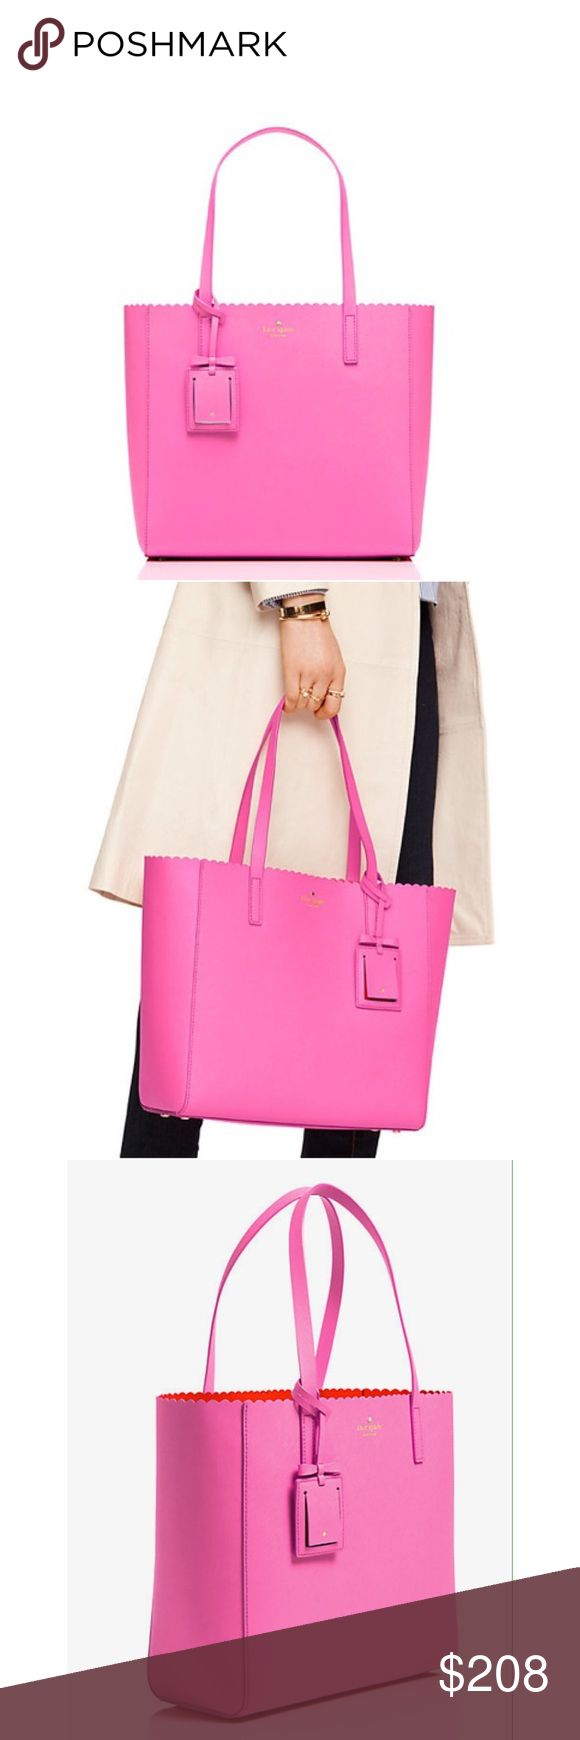 """Kate Spade Tote Bag Kate Spade Cape Drive Hallie Scalloped Saffiano Leather Tote  the handbag: it's your constant companion, your security blanket, your way-more-than-an-accessory accessory  Color: Bright Papaya / Pink Blush  Used only a few times!  💖 100% Authentic  SIZE •11.7"""" h x 12.5"""" w x 5.5"""" d •drop length: 9""""  MATERIAL •double face crosshatched leather with matching trim •14 karat gold plated hardware  DETAILS •over the shoulder bag with open top •kate spade new york gold embossed…"""